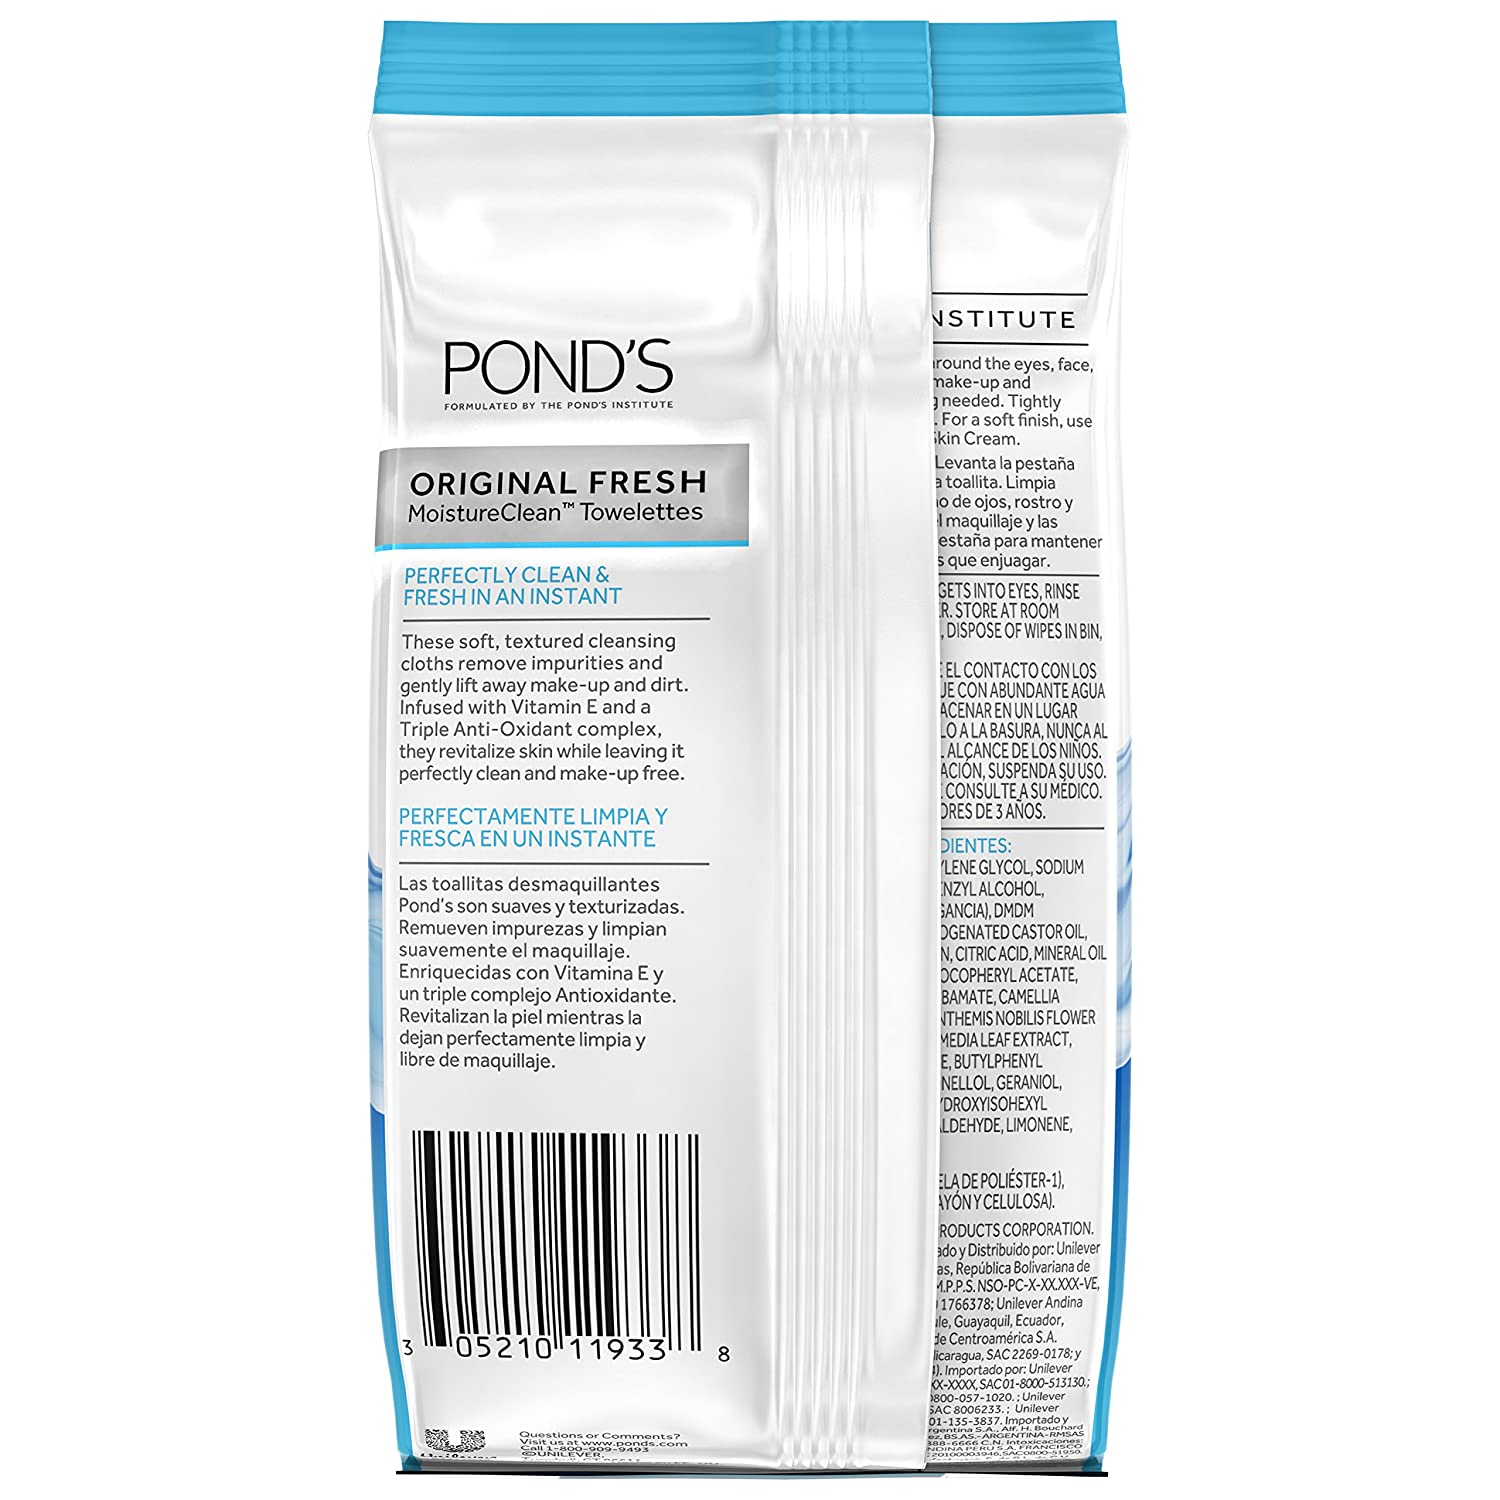 Amazon.com: Ponds MoistureClean Towelettes, Original Fresh Makeup Remover Wipes with Vitamin E 15 ea (Pack of 3): Beauty